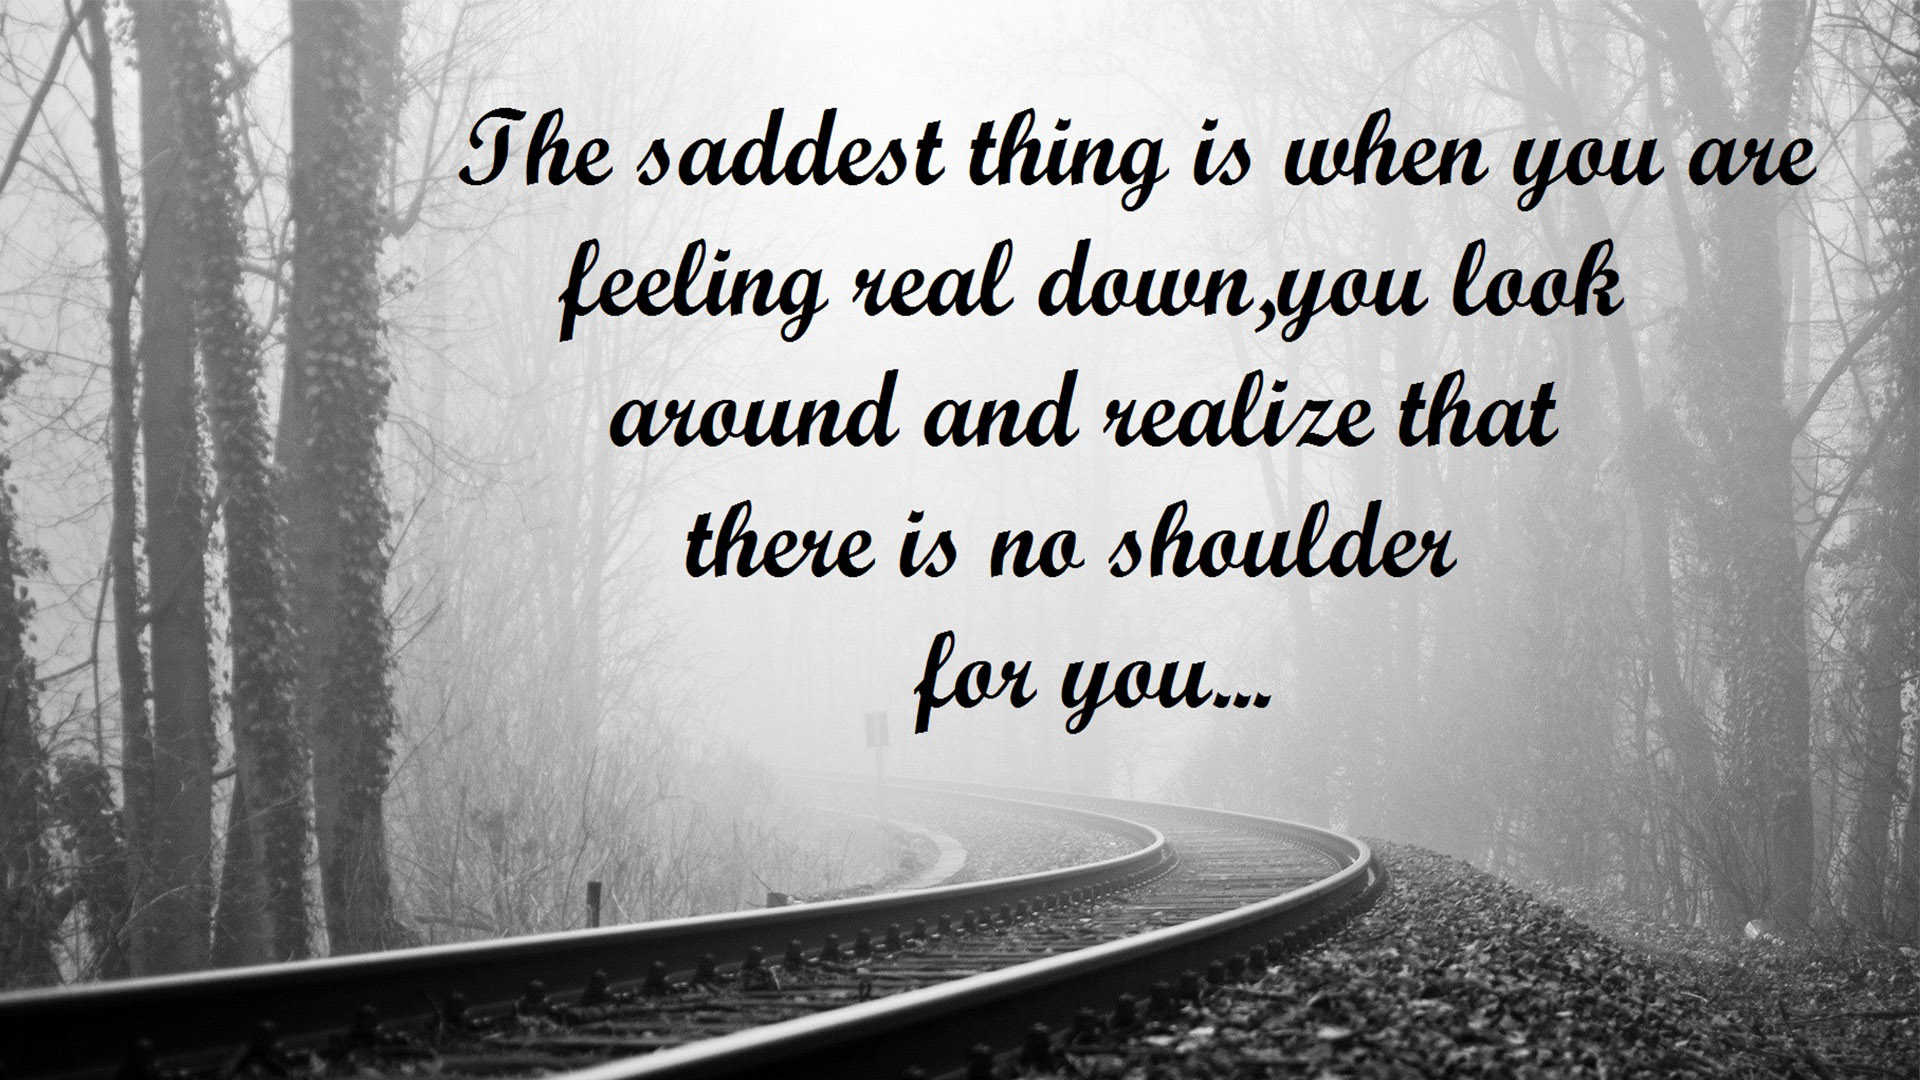 sad quotes about life sad life quotes - HD1920×1080